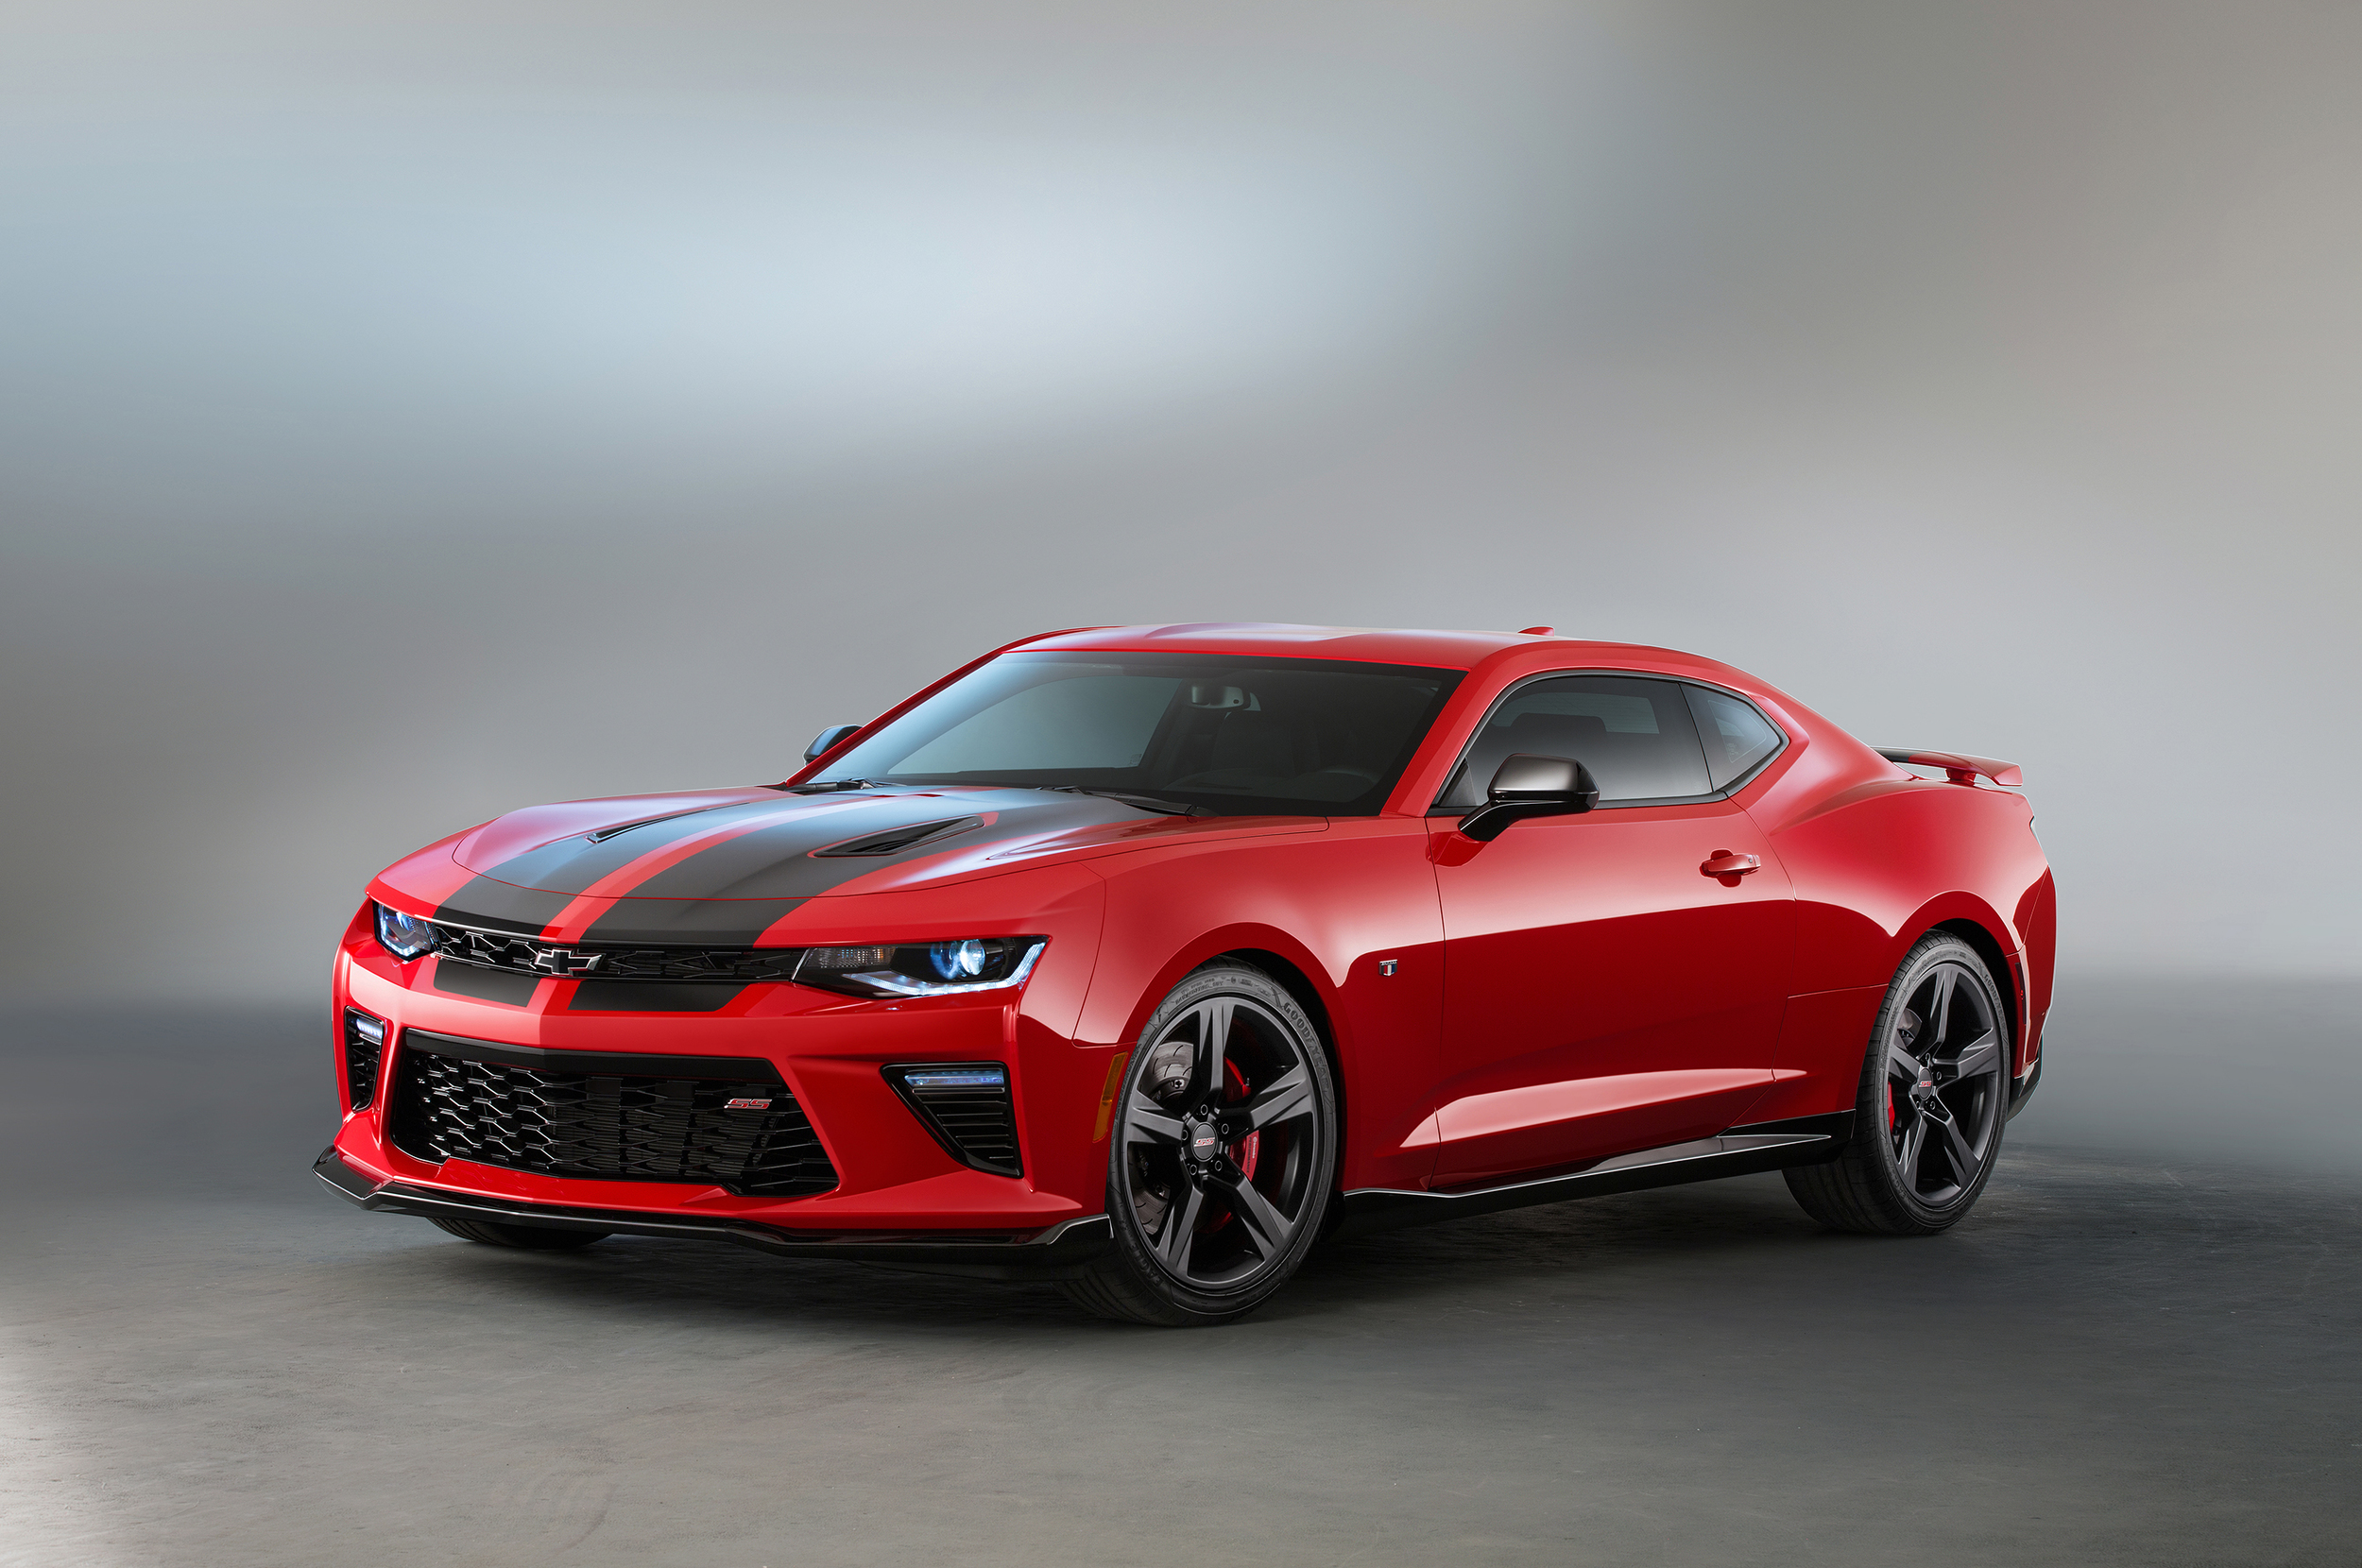 chevy camaro red and black accent concepts autoblog 日本版